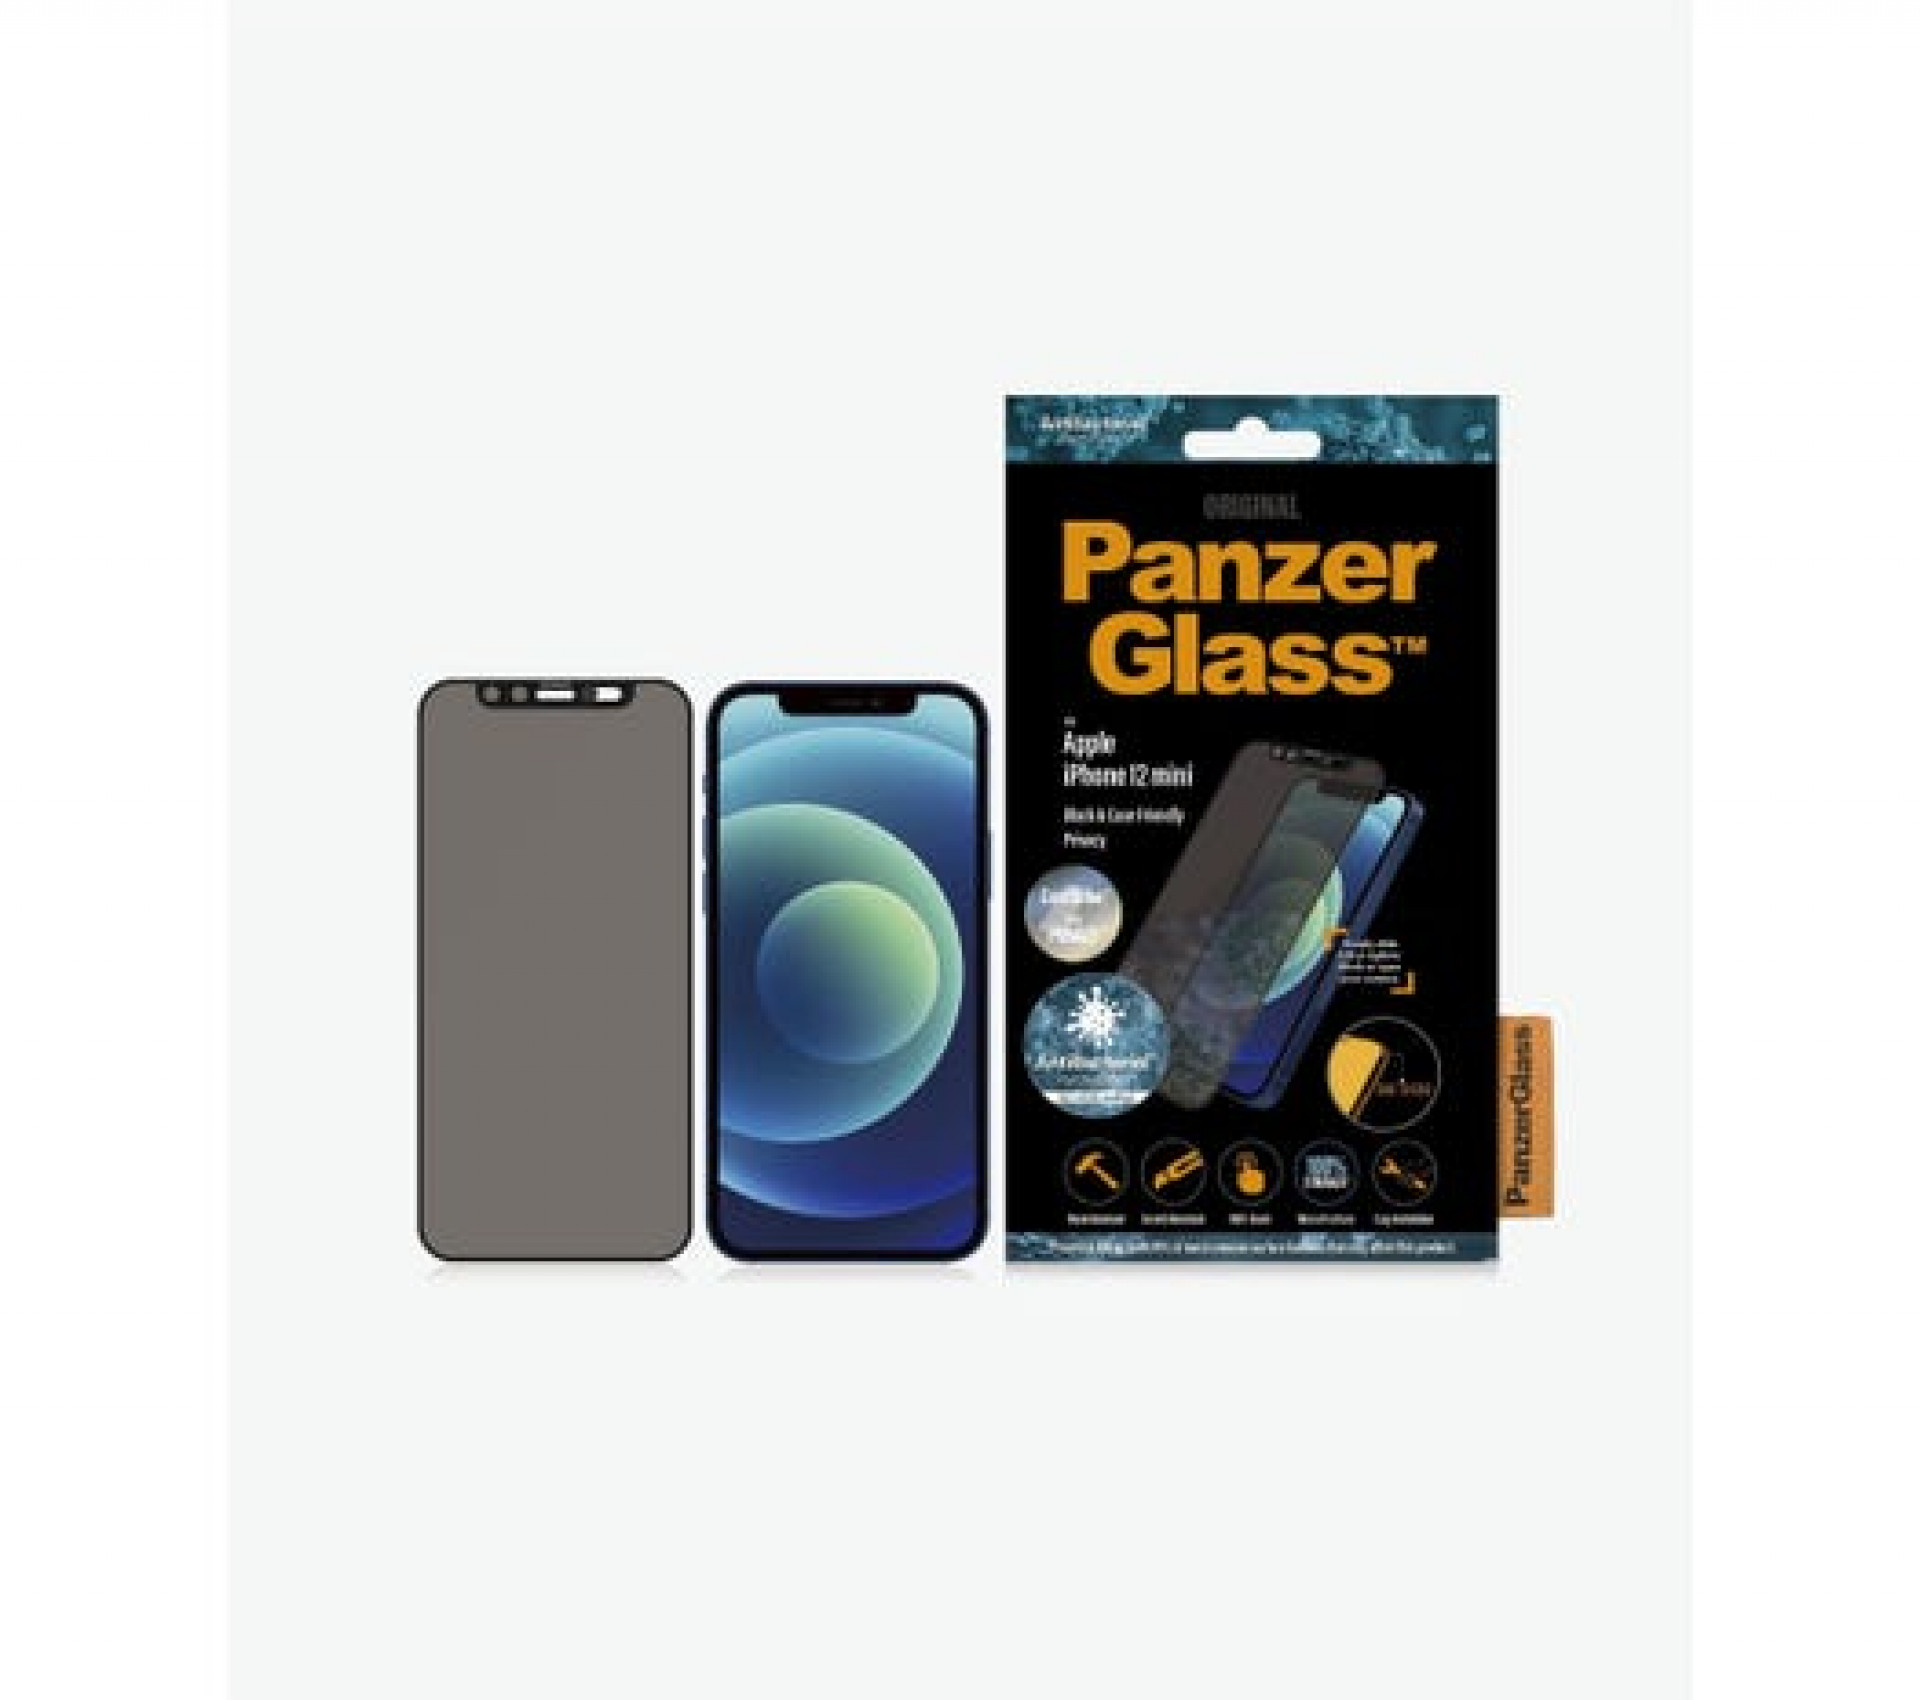 PanzerGlass iPhone 12 Mini Case Friendly CamSlider Dual Privacy Screen Protector - Black